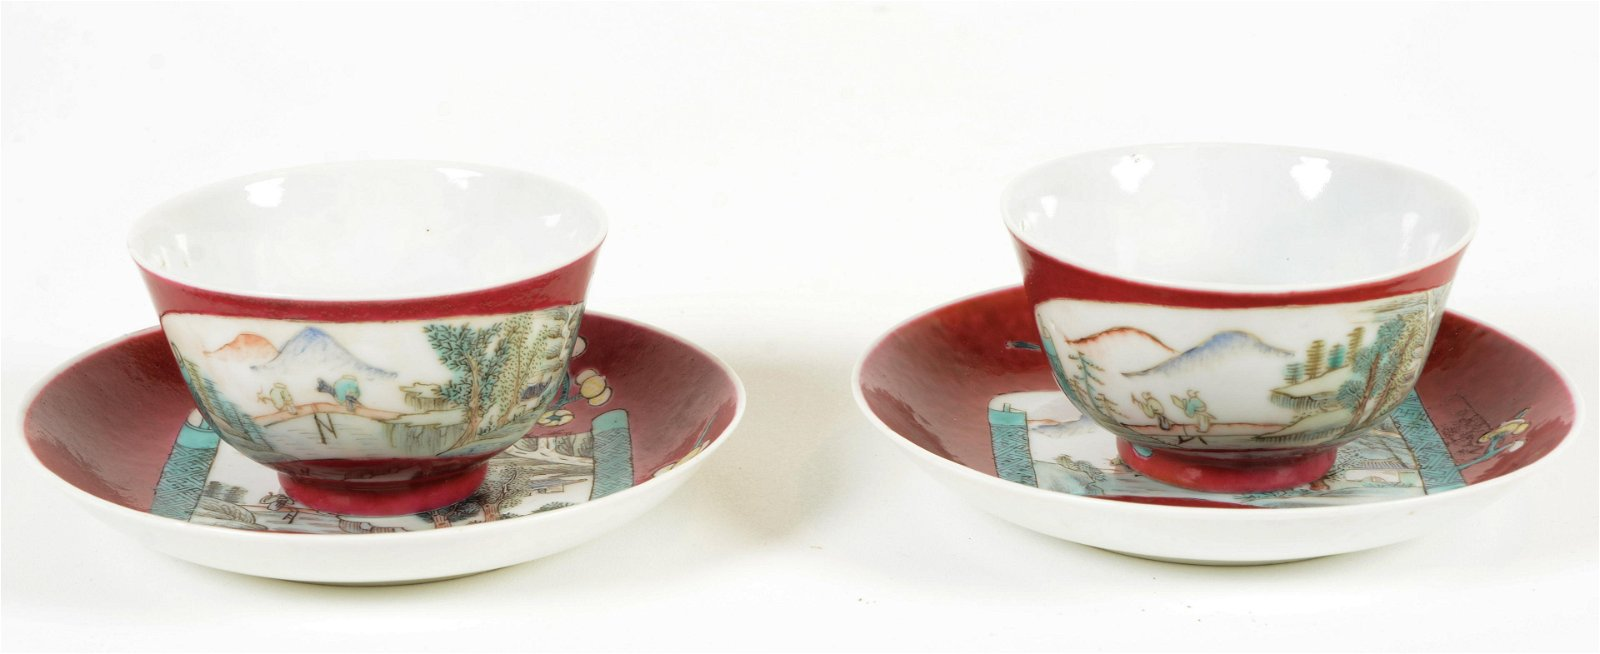 Pair of Porcelain Cups and Saucers